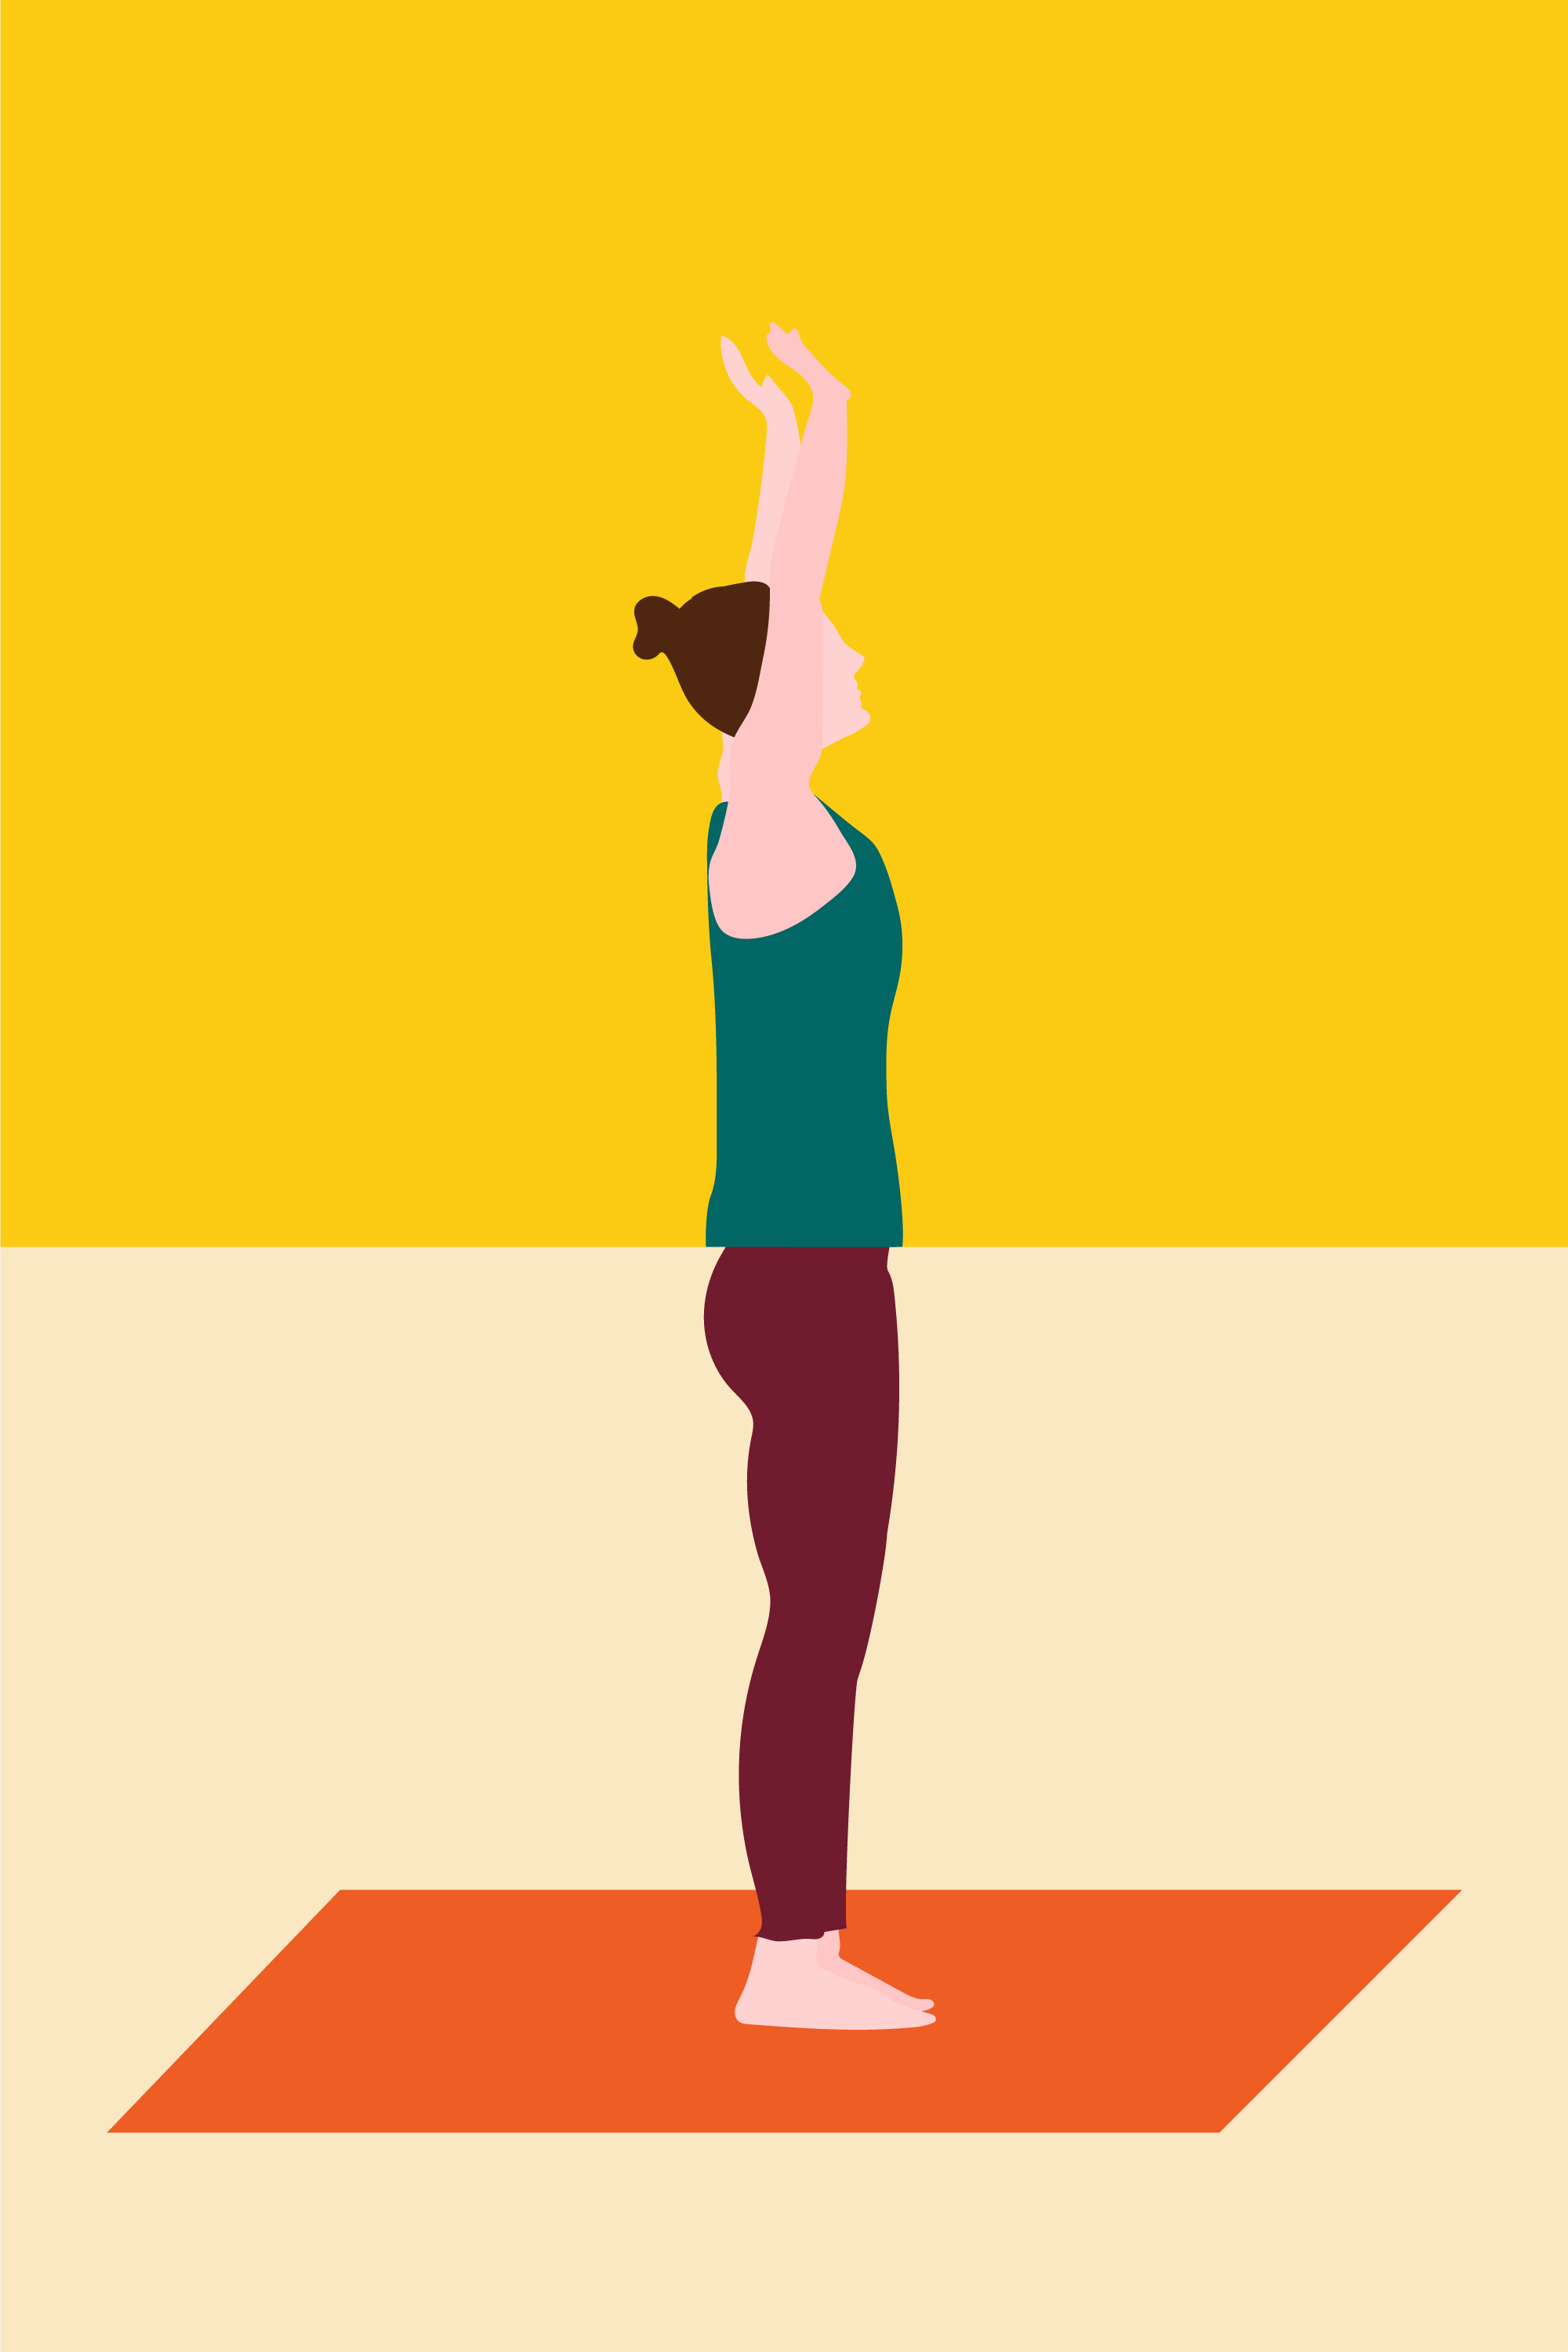 Yoga For Beginners – Poses, Easy At-Home Workout Plan